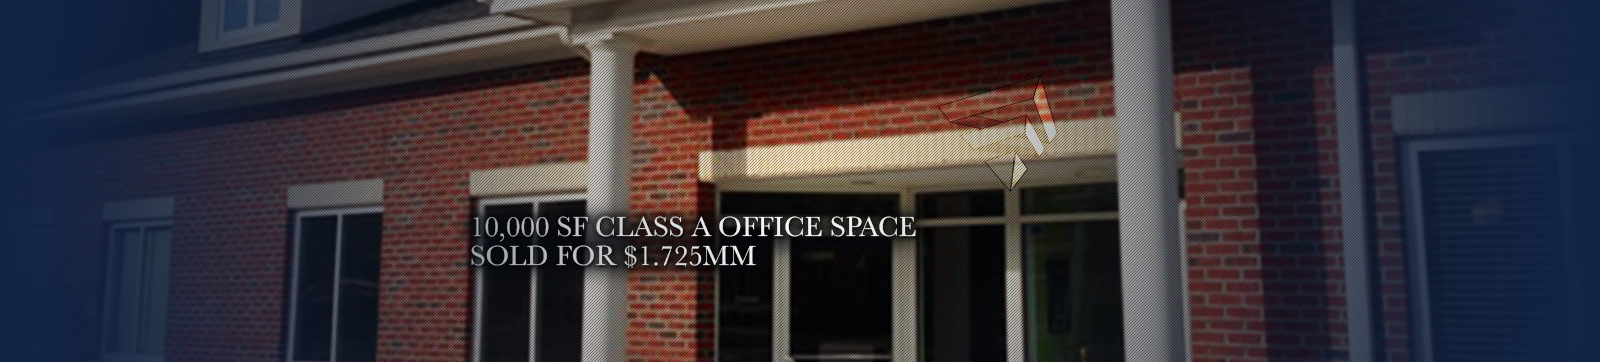 10,000 SF Class Office Space